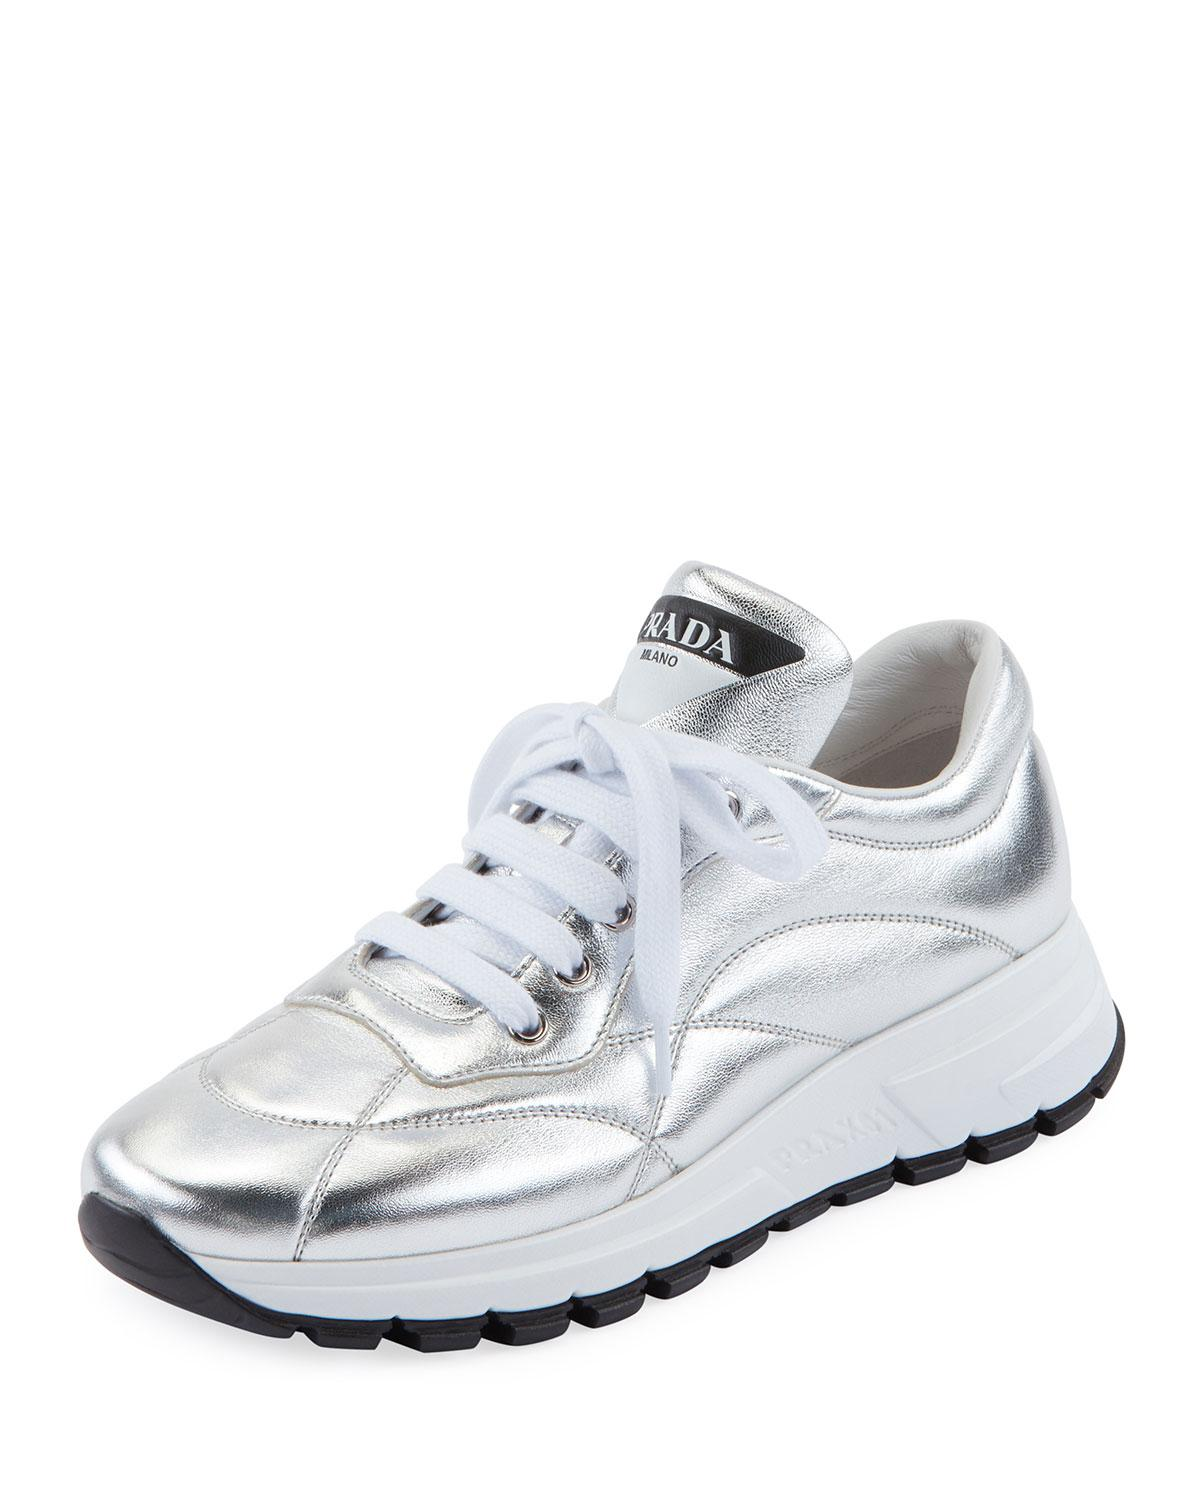 16e7da3bbd0 Lyst - Prada Quilted Leather Trainer Sneakers in White